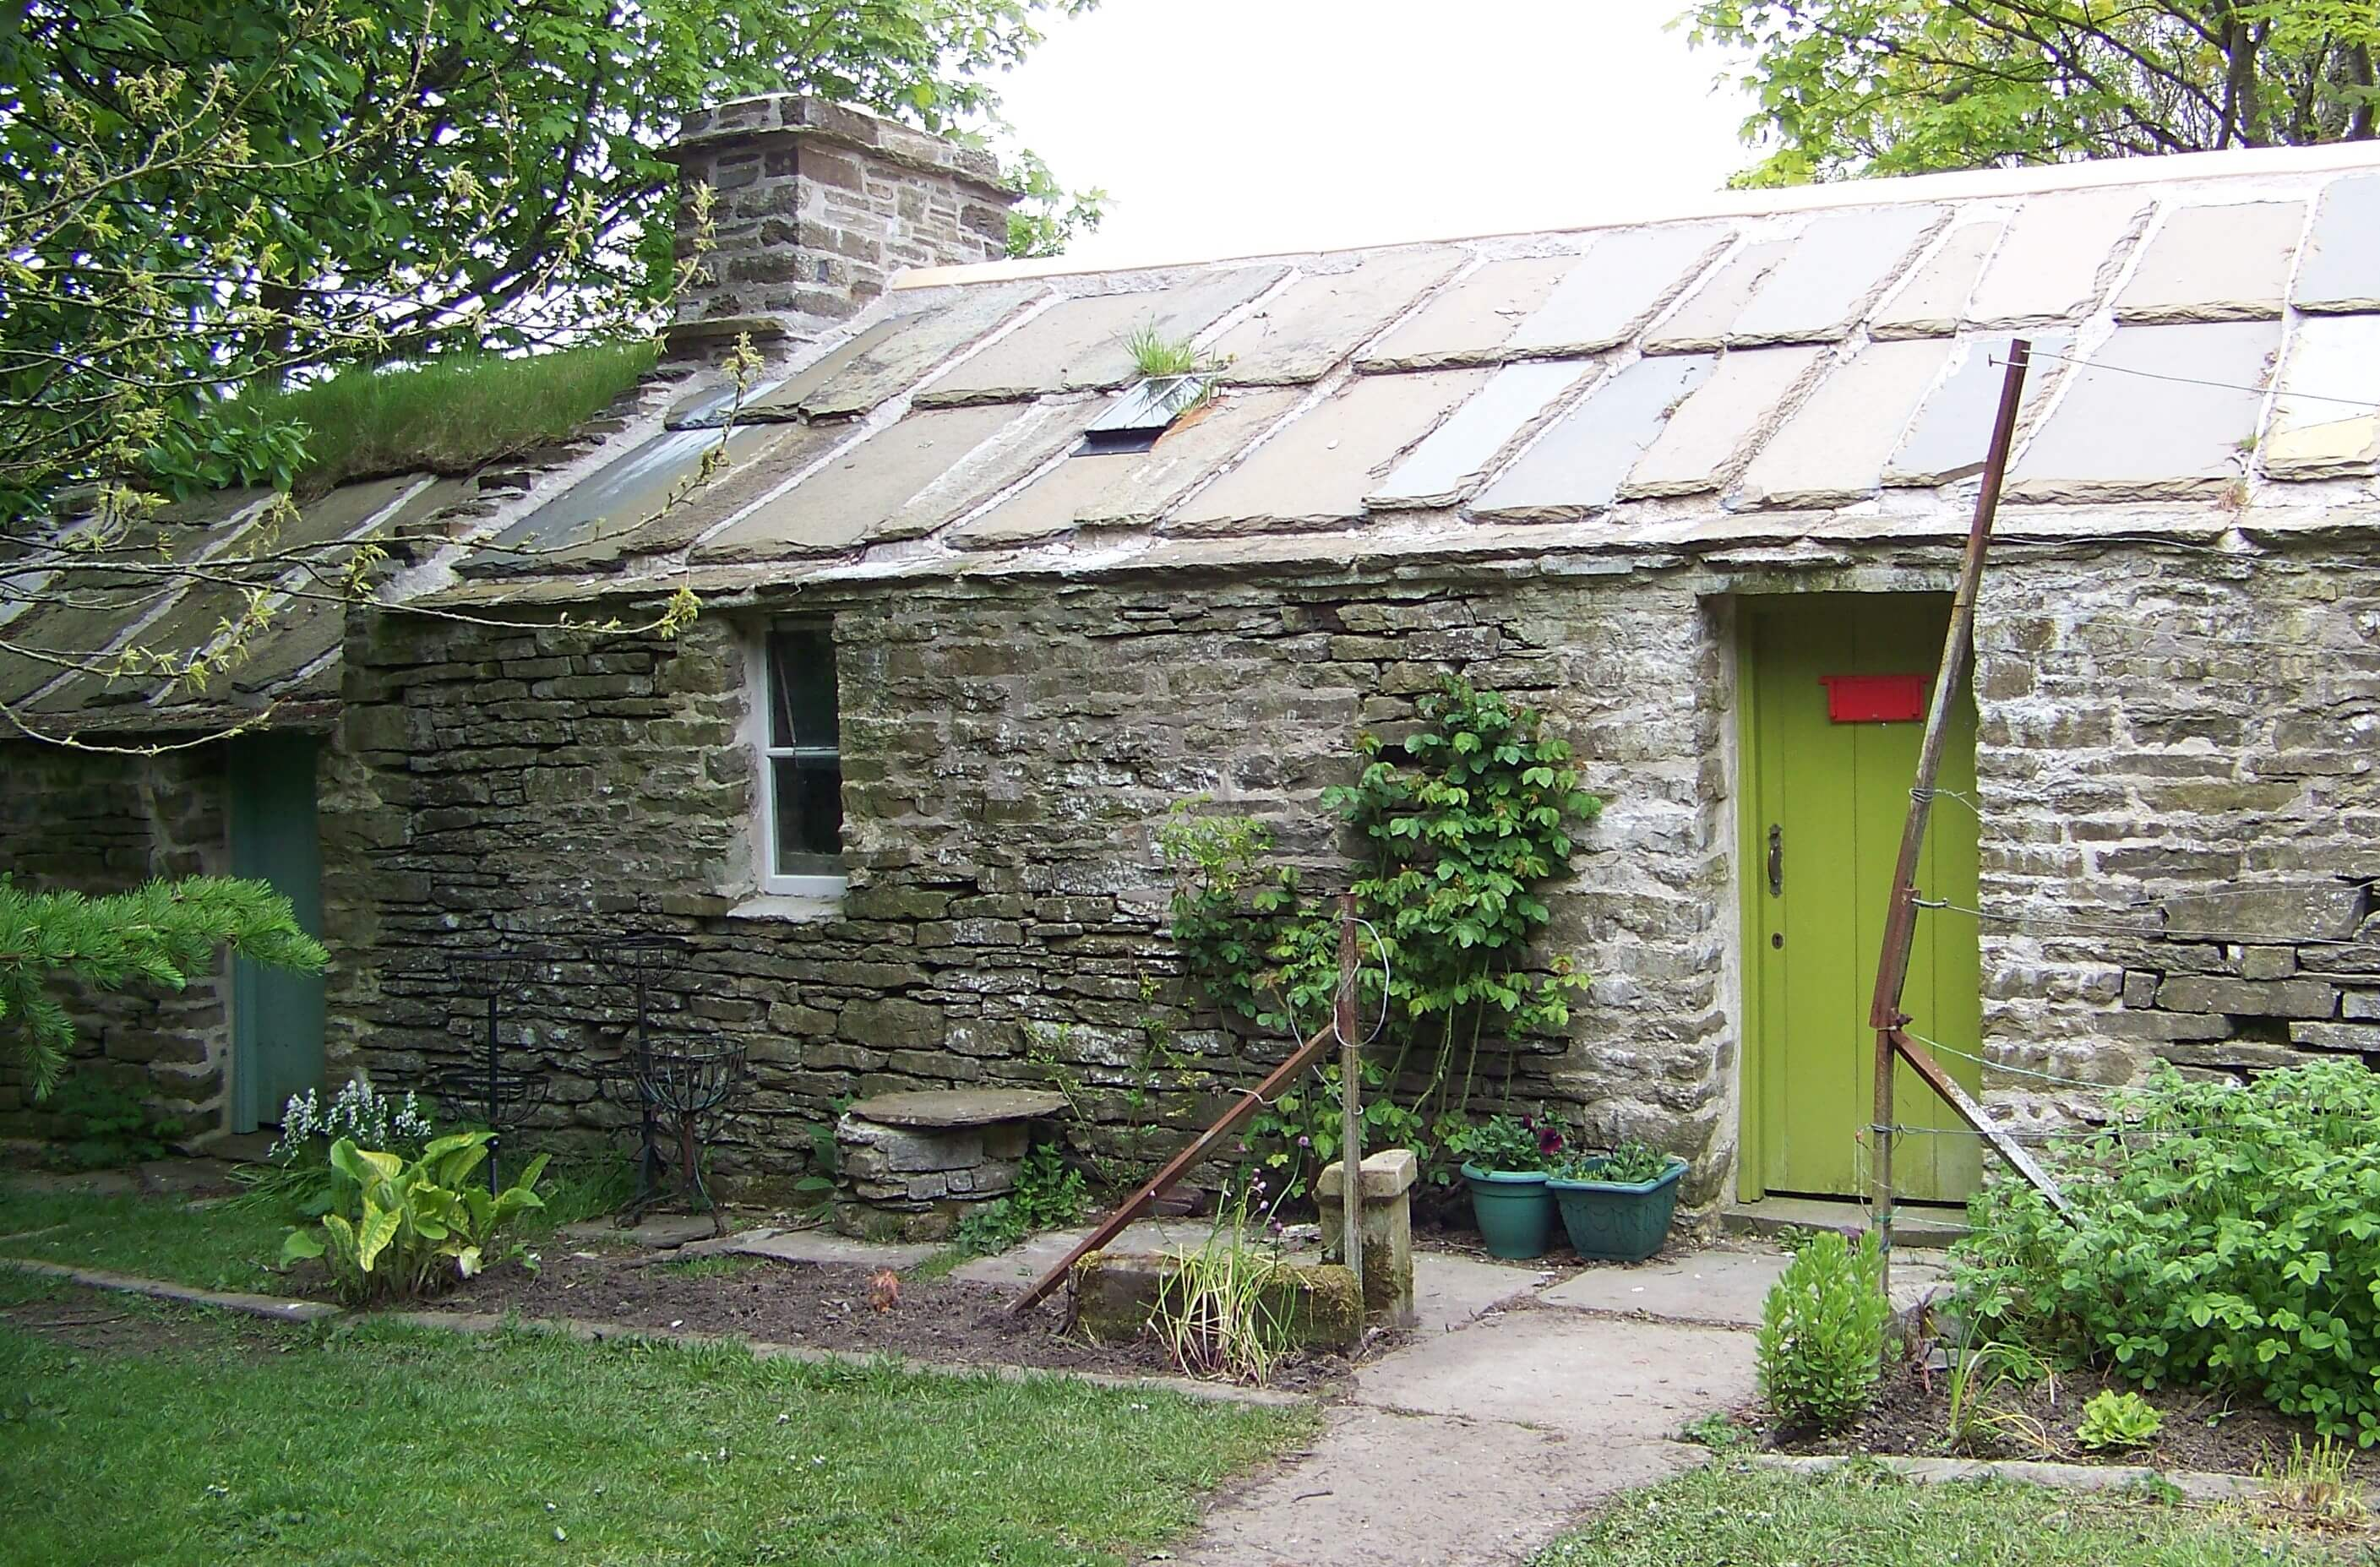 Edwin's cottage